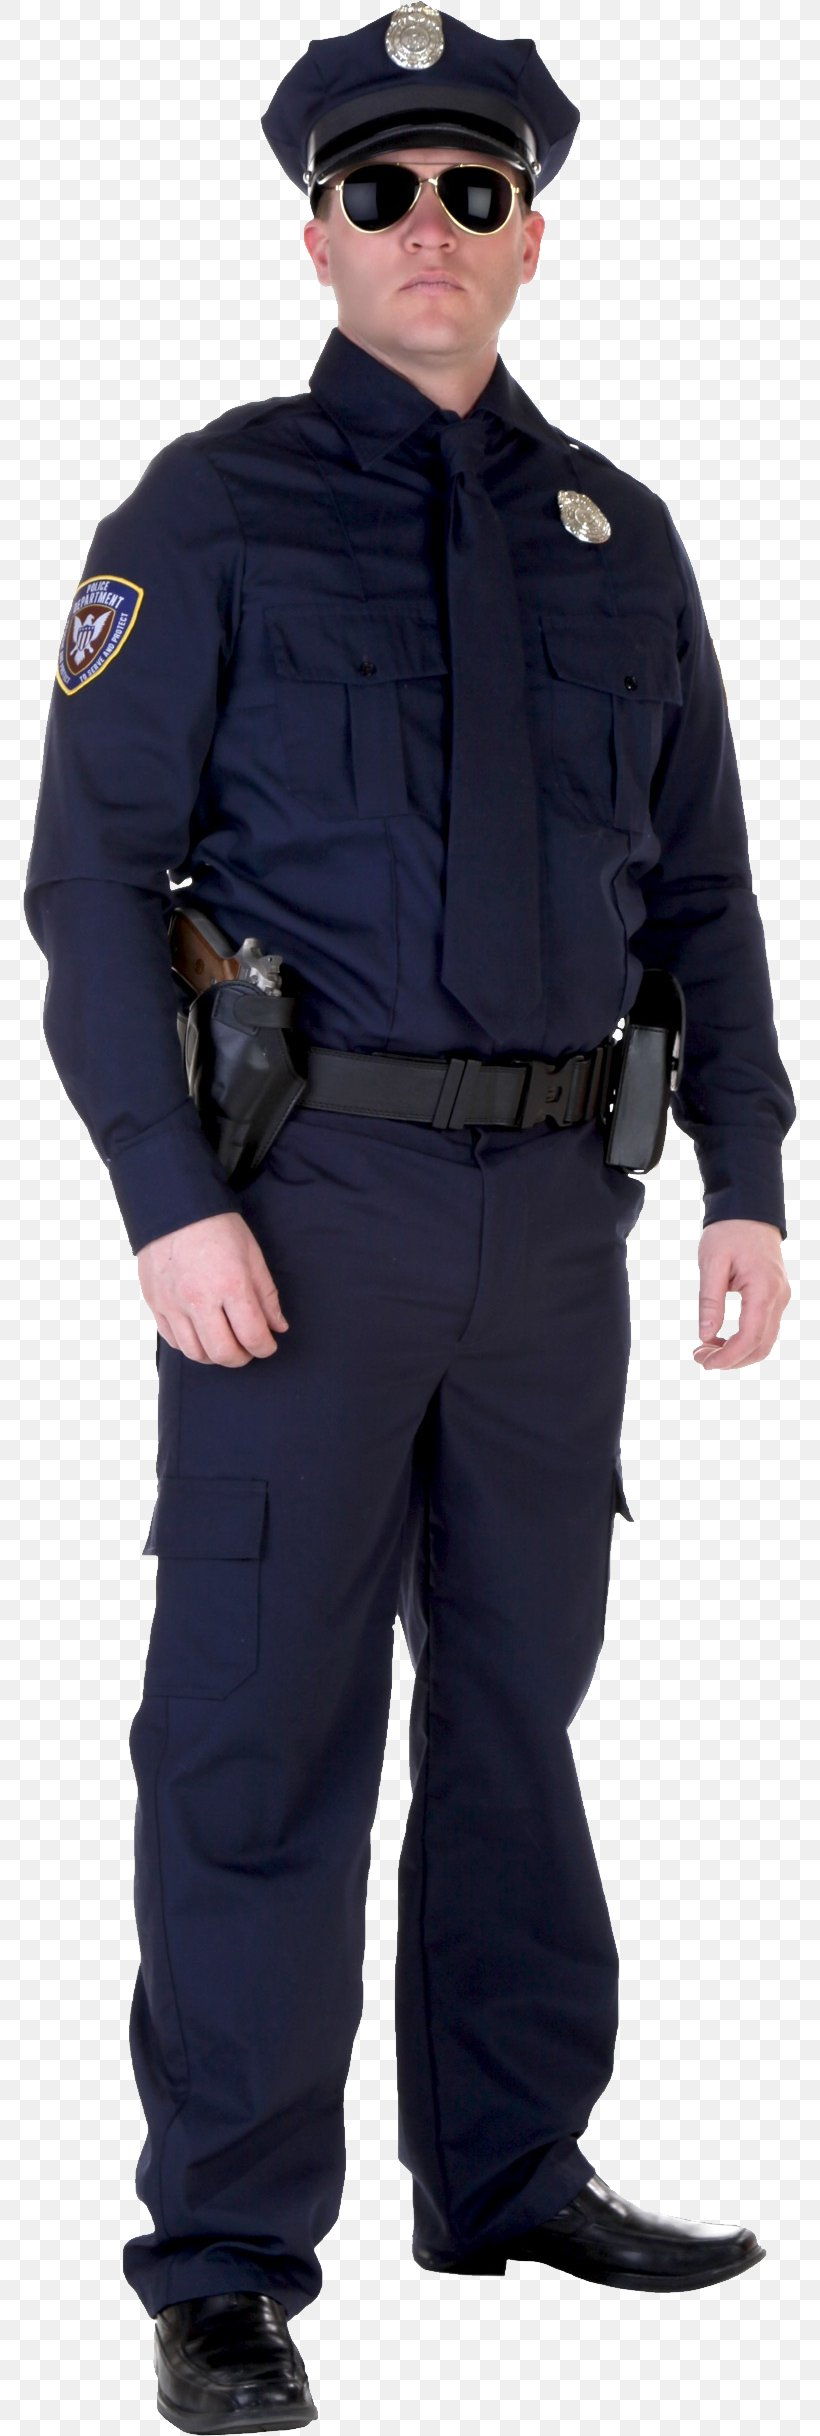 Couple Costume Police Officer Halloween Costume, PNG, 774x2436px, Costume, Clothing, Halloween Costume, Law Enforcement, Man Download Free